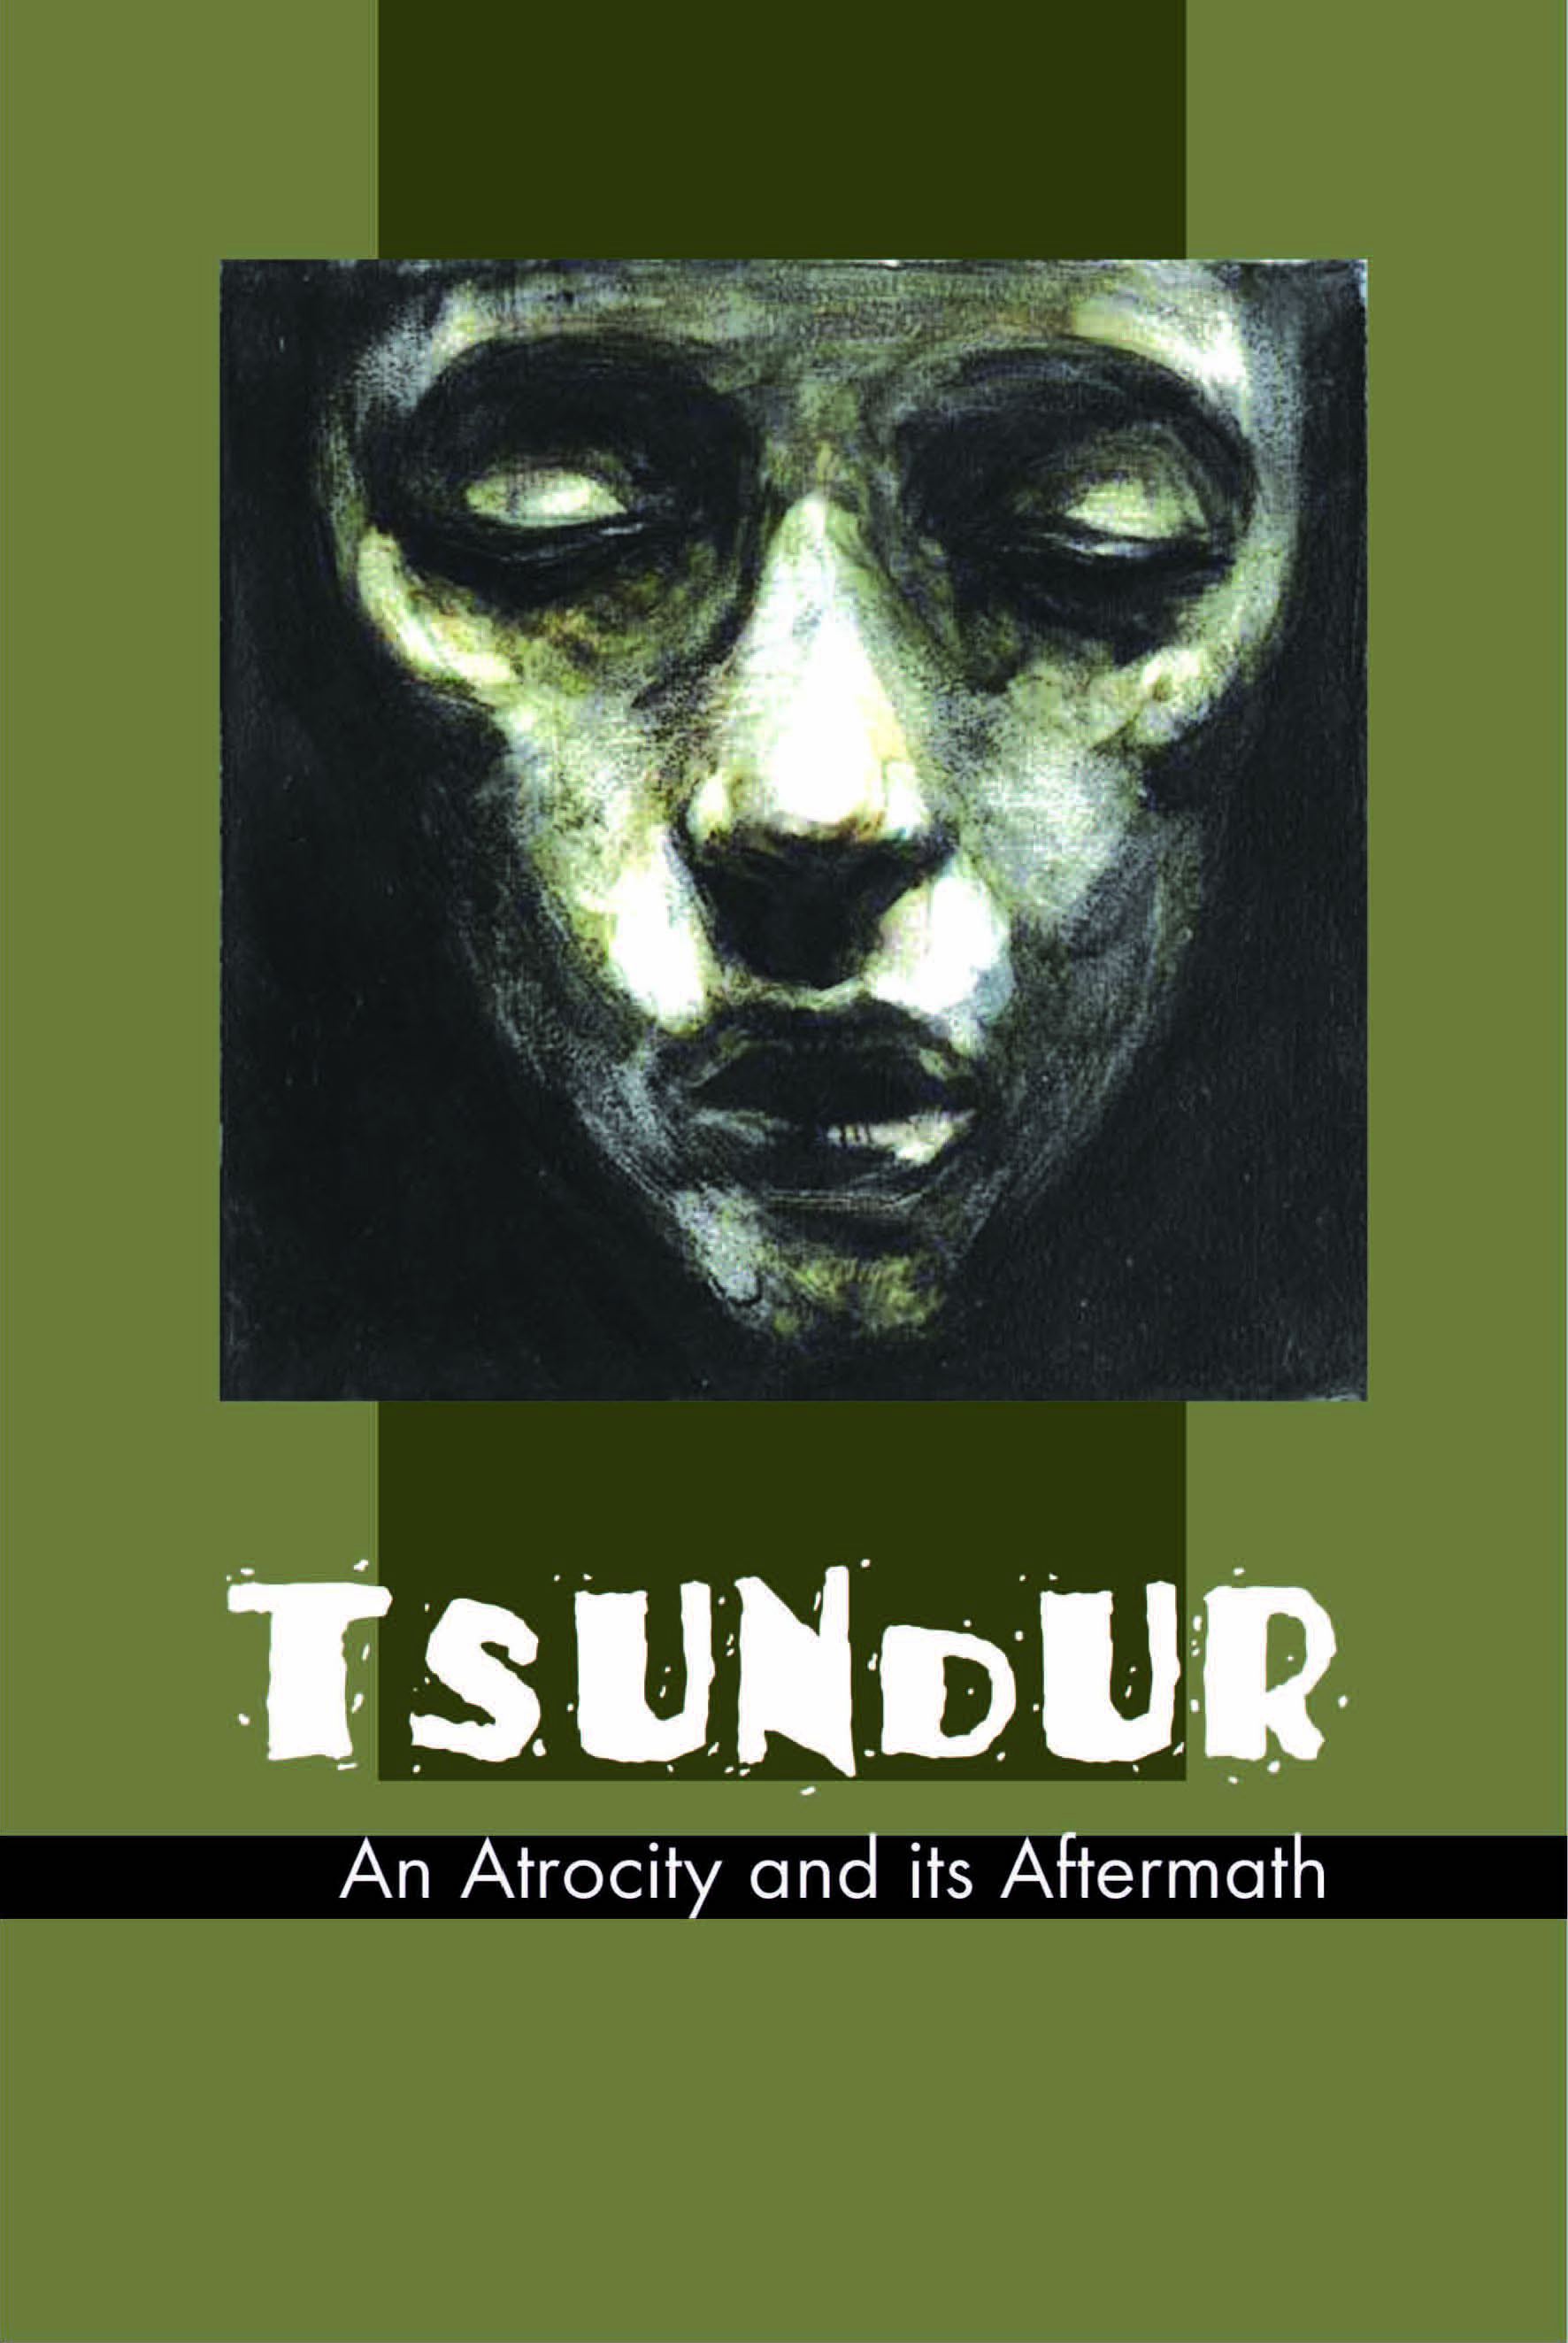 TSUNDUR-AN ATROCITY AND ITS AFTERMATH